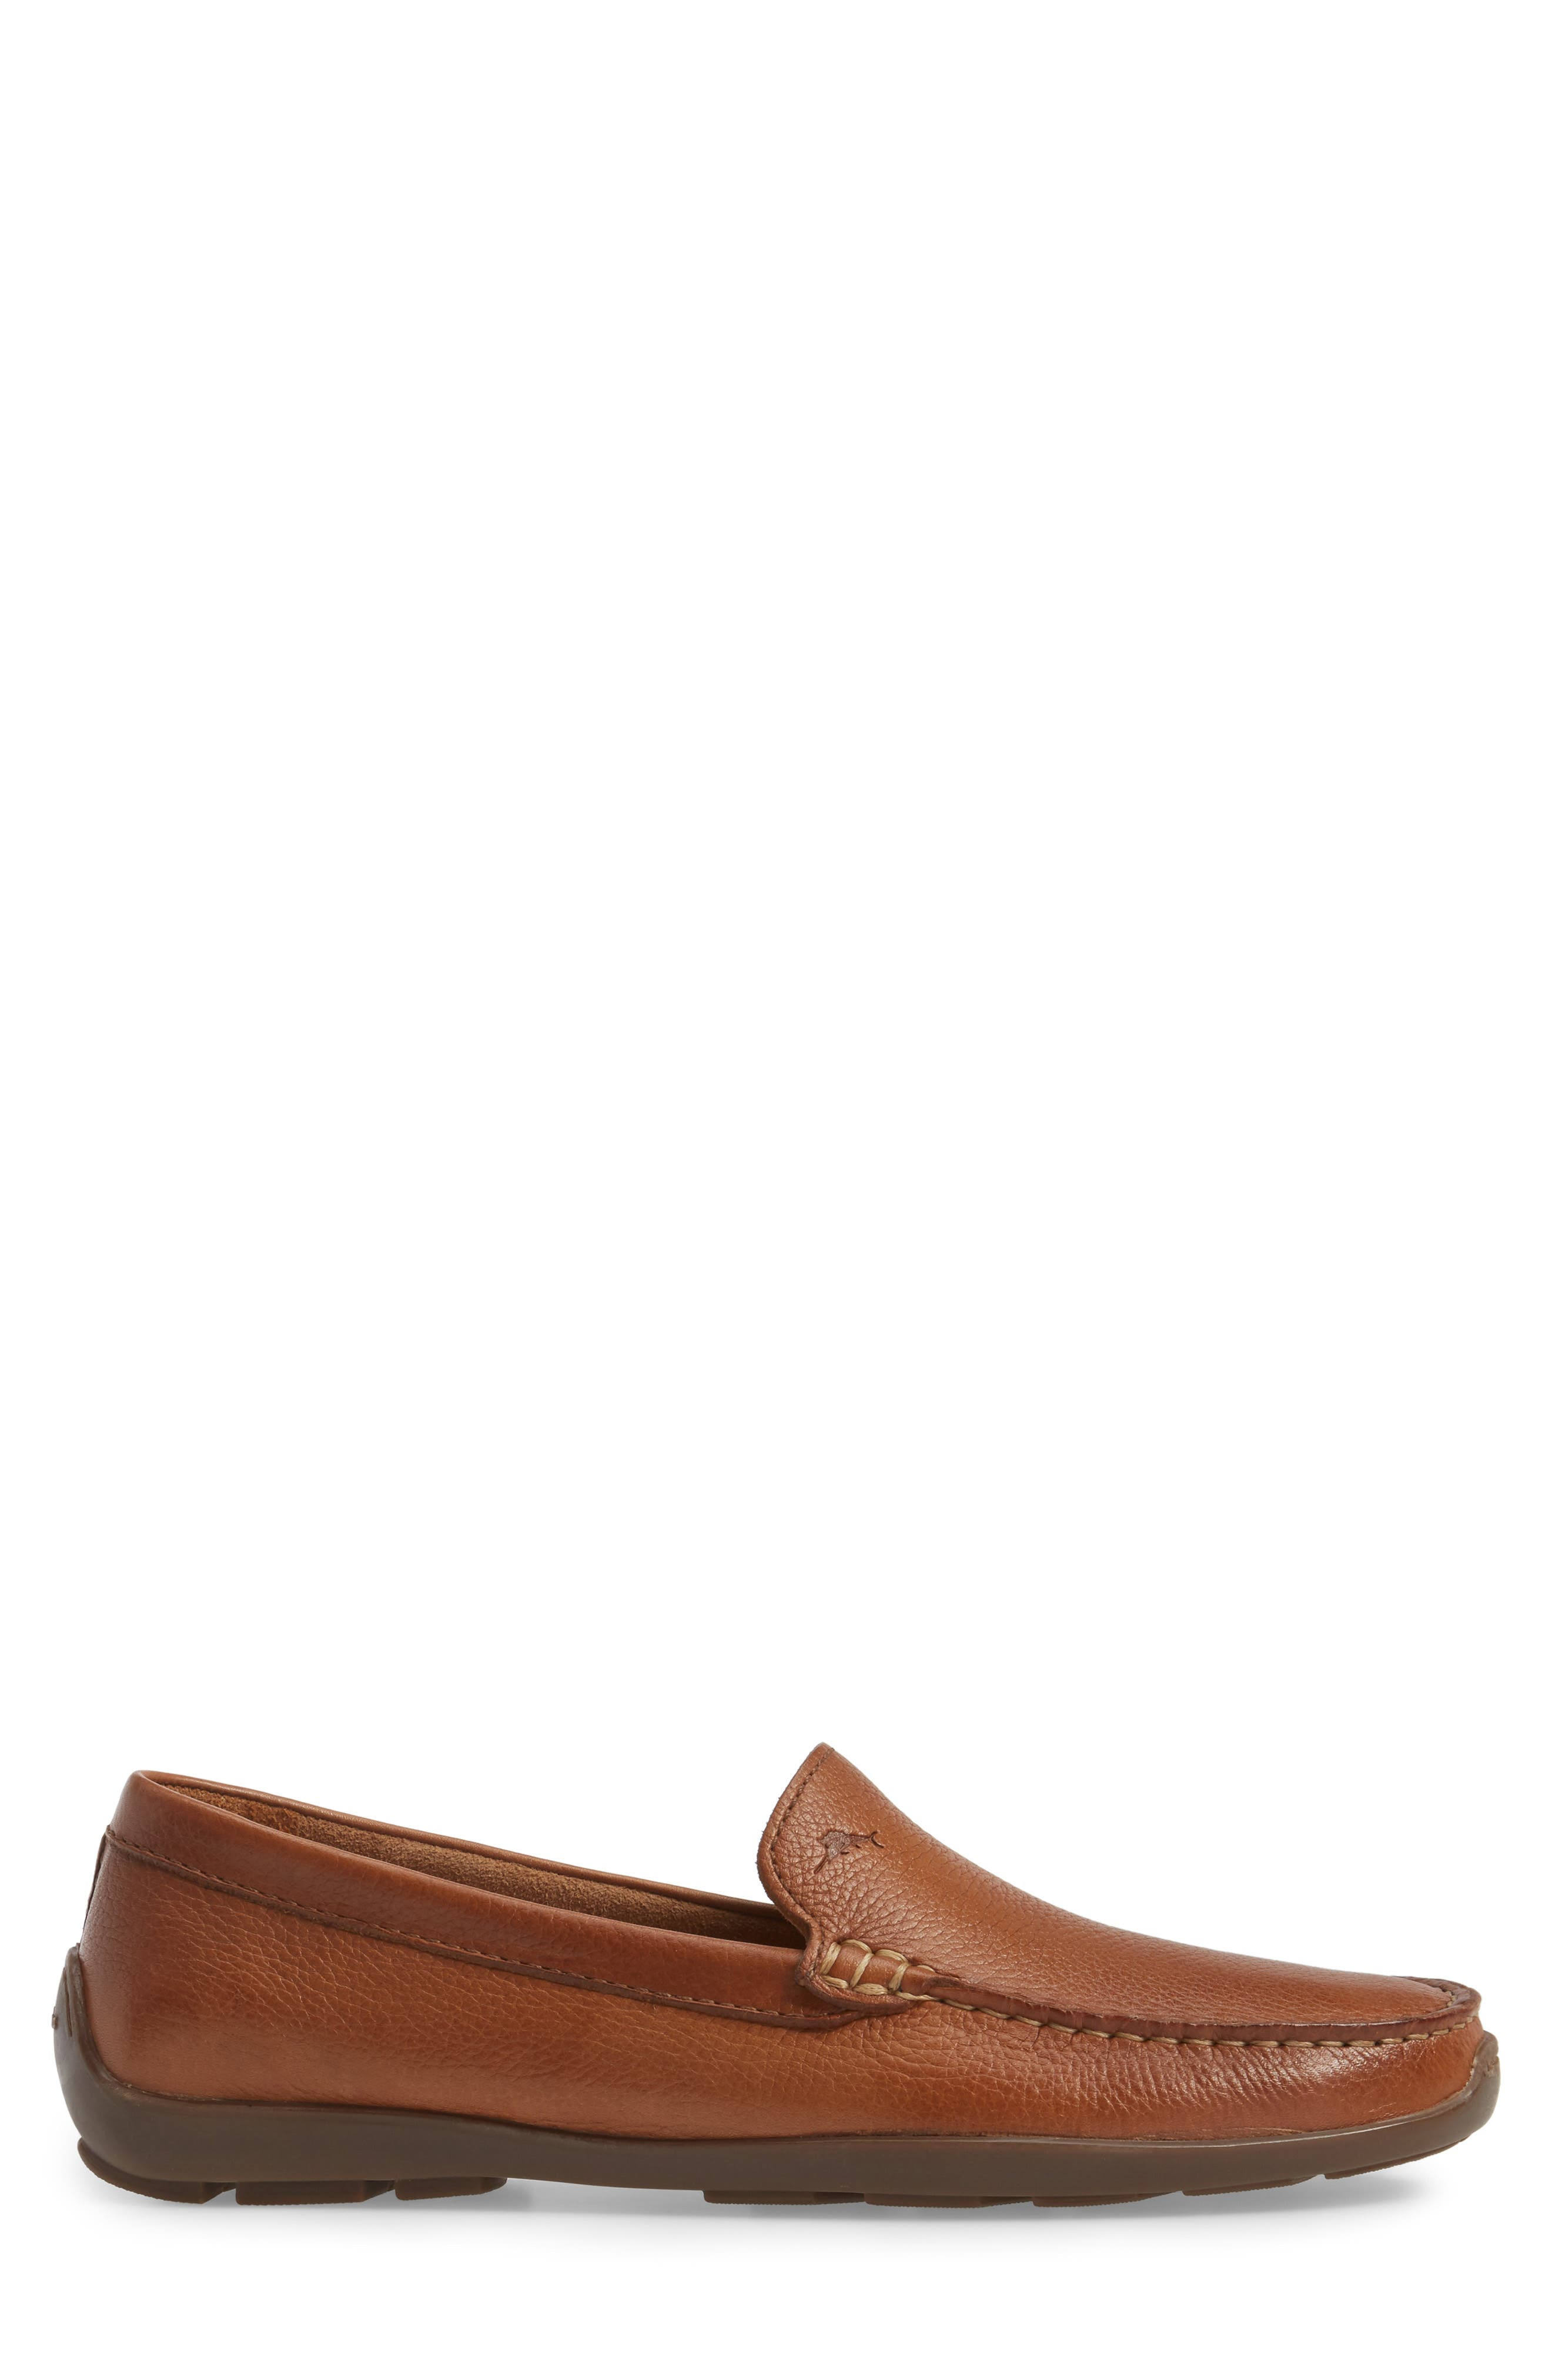 Orion Venetian Loafer,                             Alternate thumbnail 3, color,                             TAN LEATHER